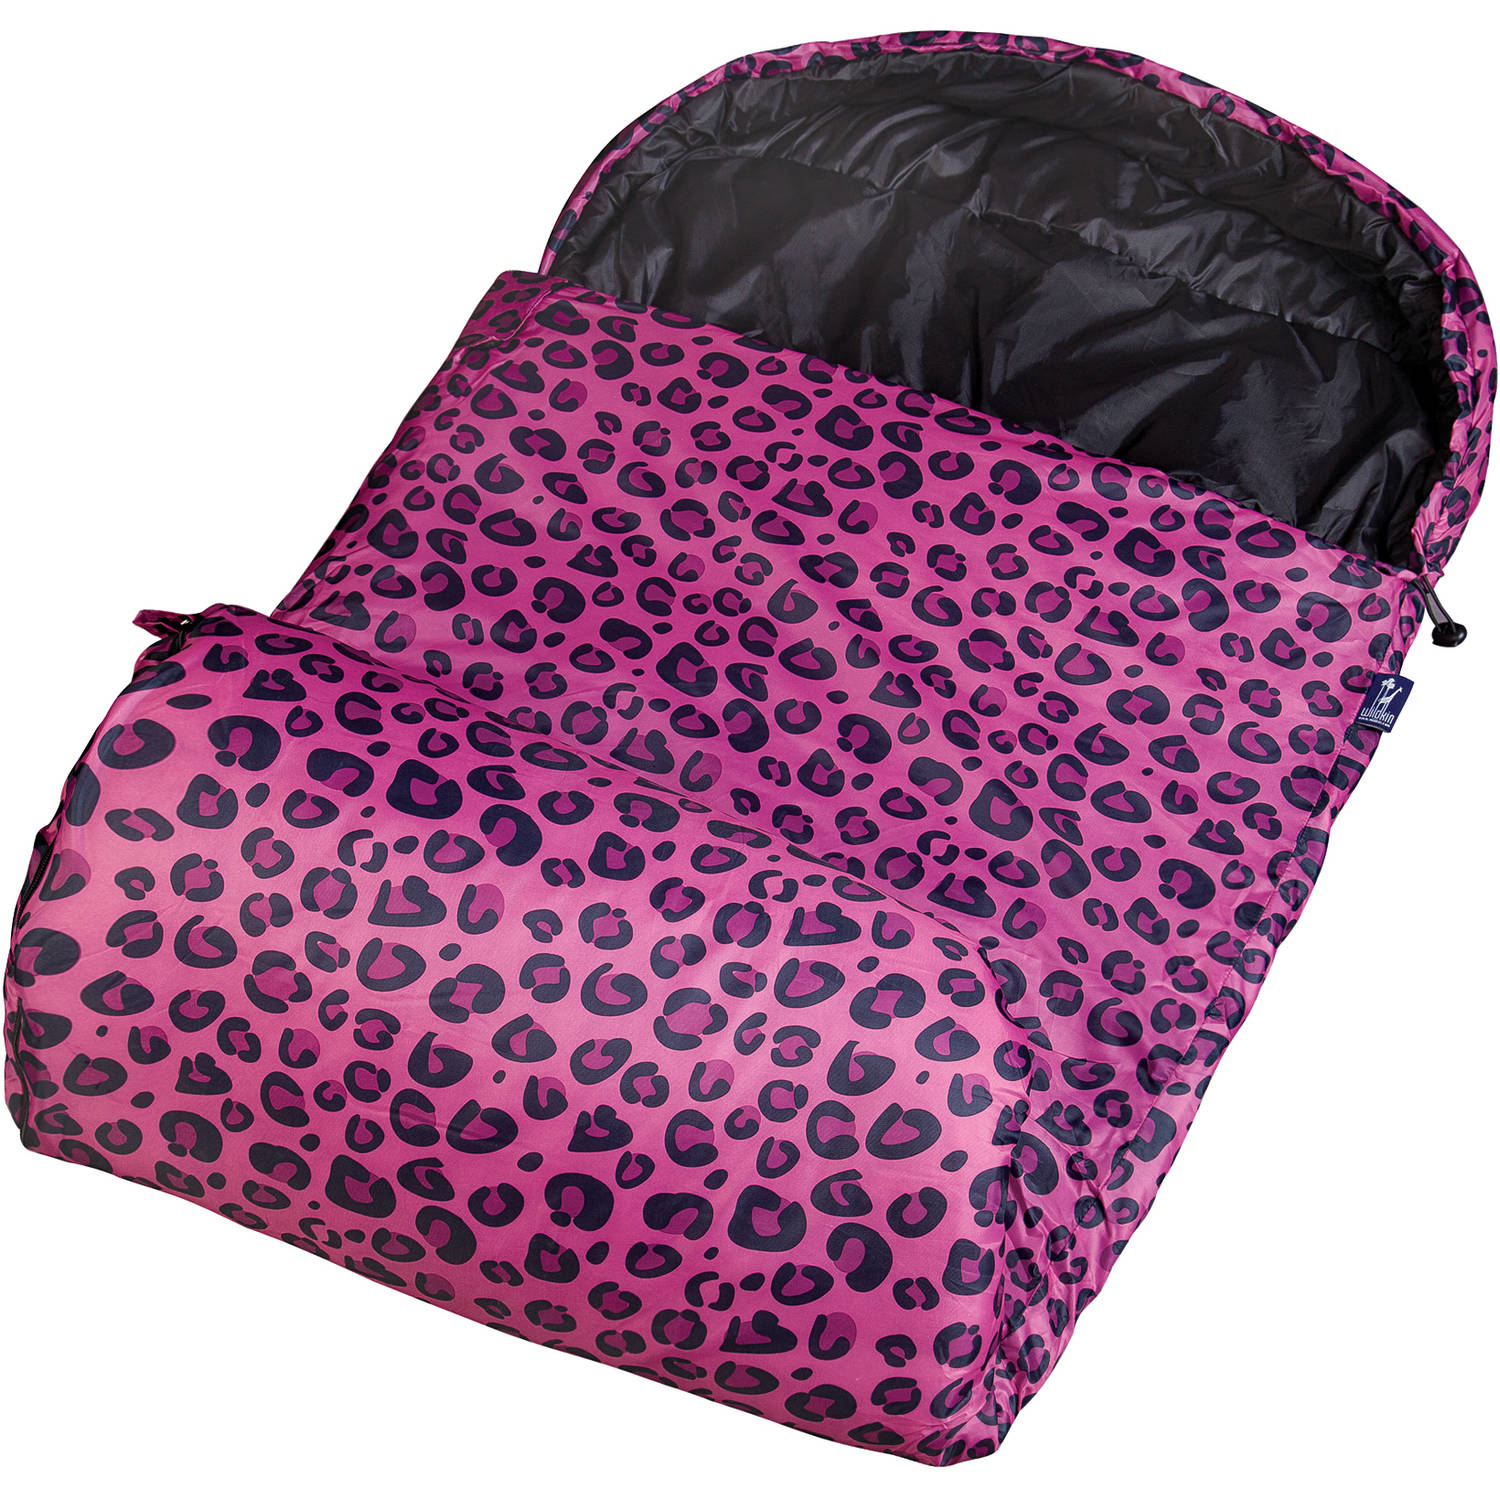 Wildkin Stay Warm 30-Degree Kids' Sleeping Bag, Pink Leopard